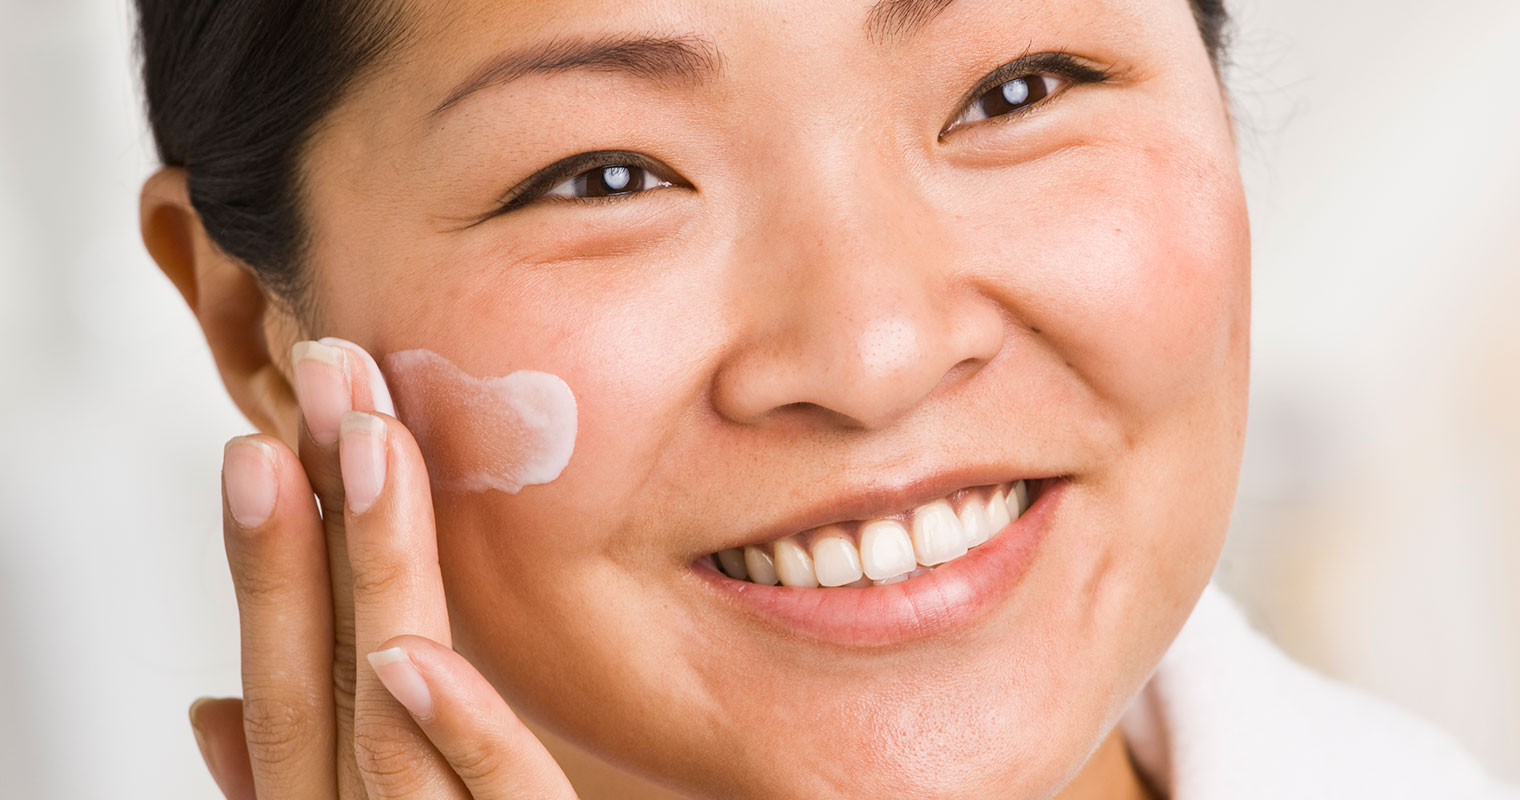 use of hydroquinone cream may reduce appearance of hyperpigmentation